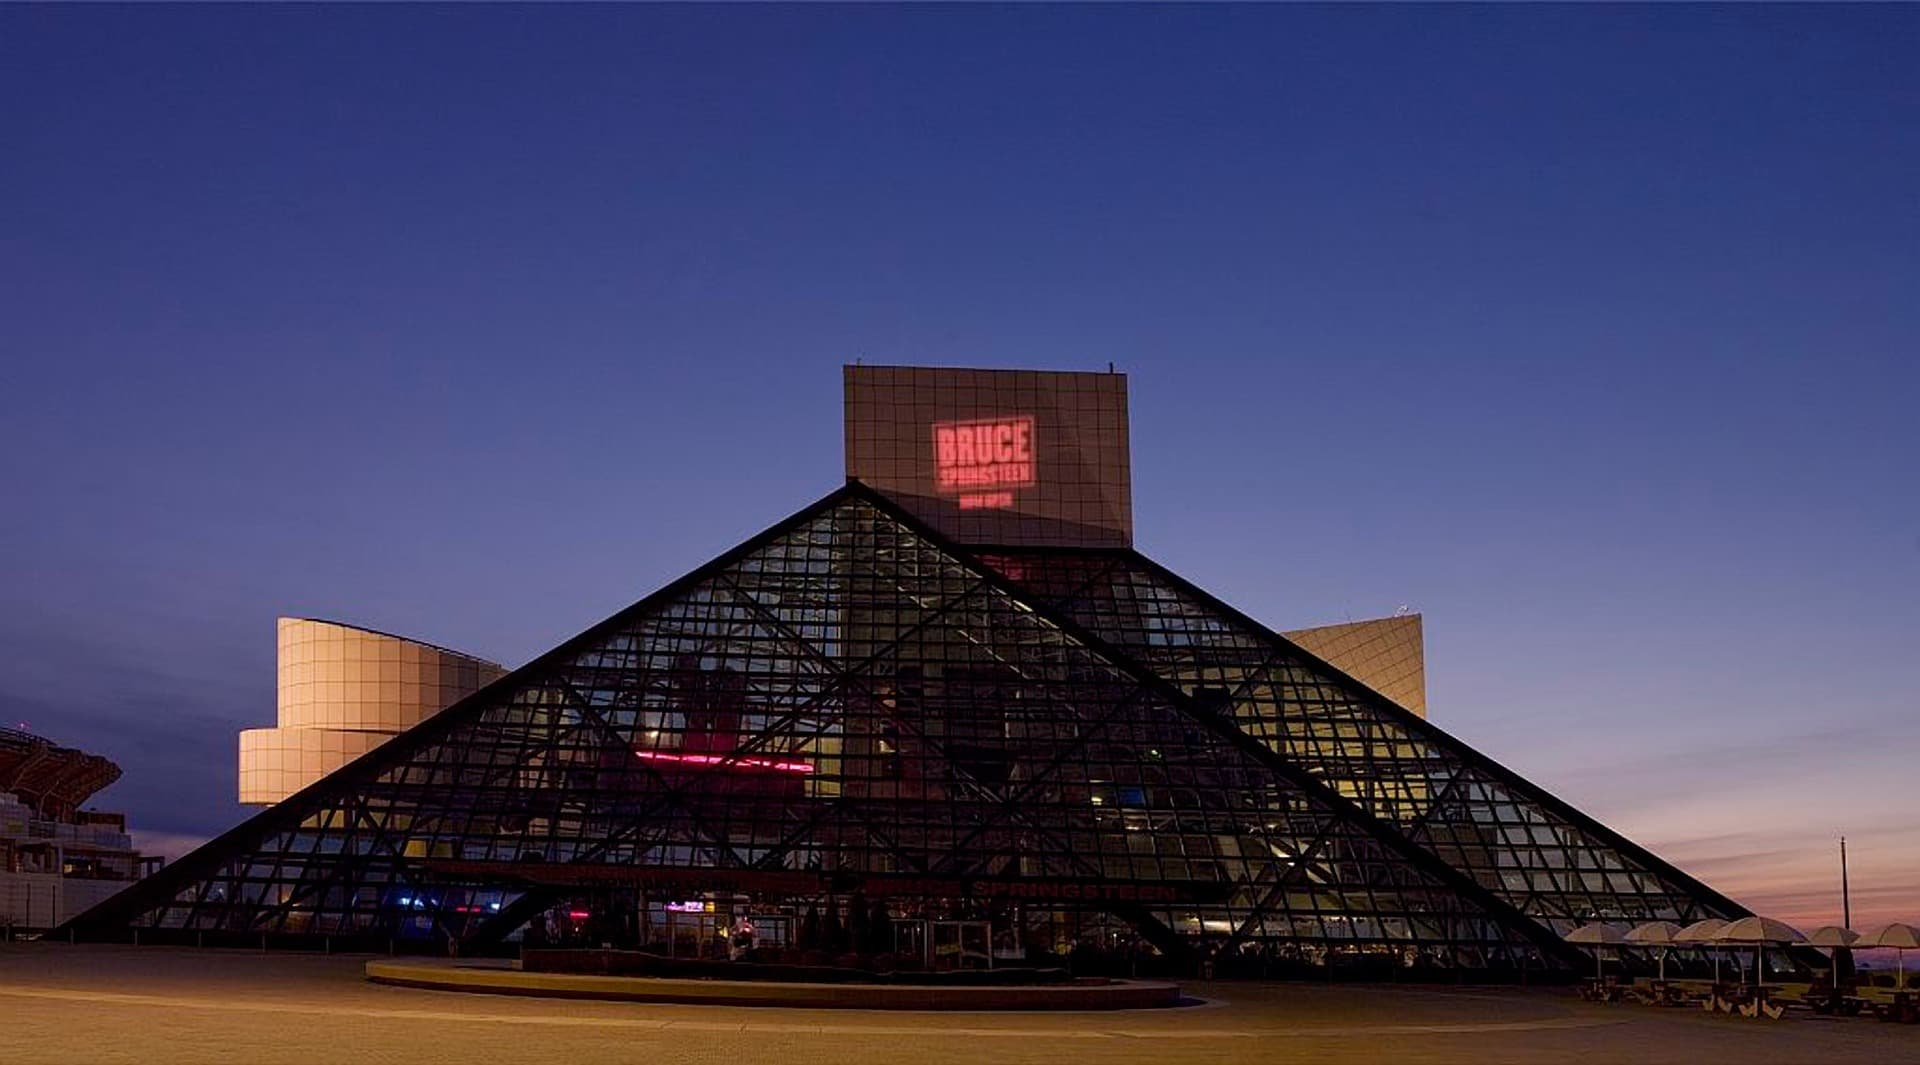 1 – The Rock and Roll Hall of Fame, Cleveland.